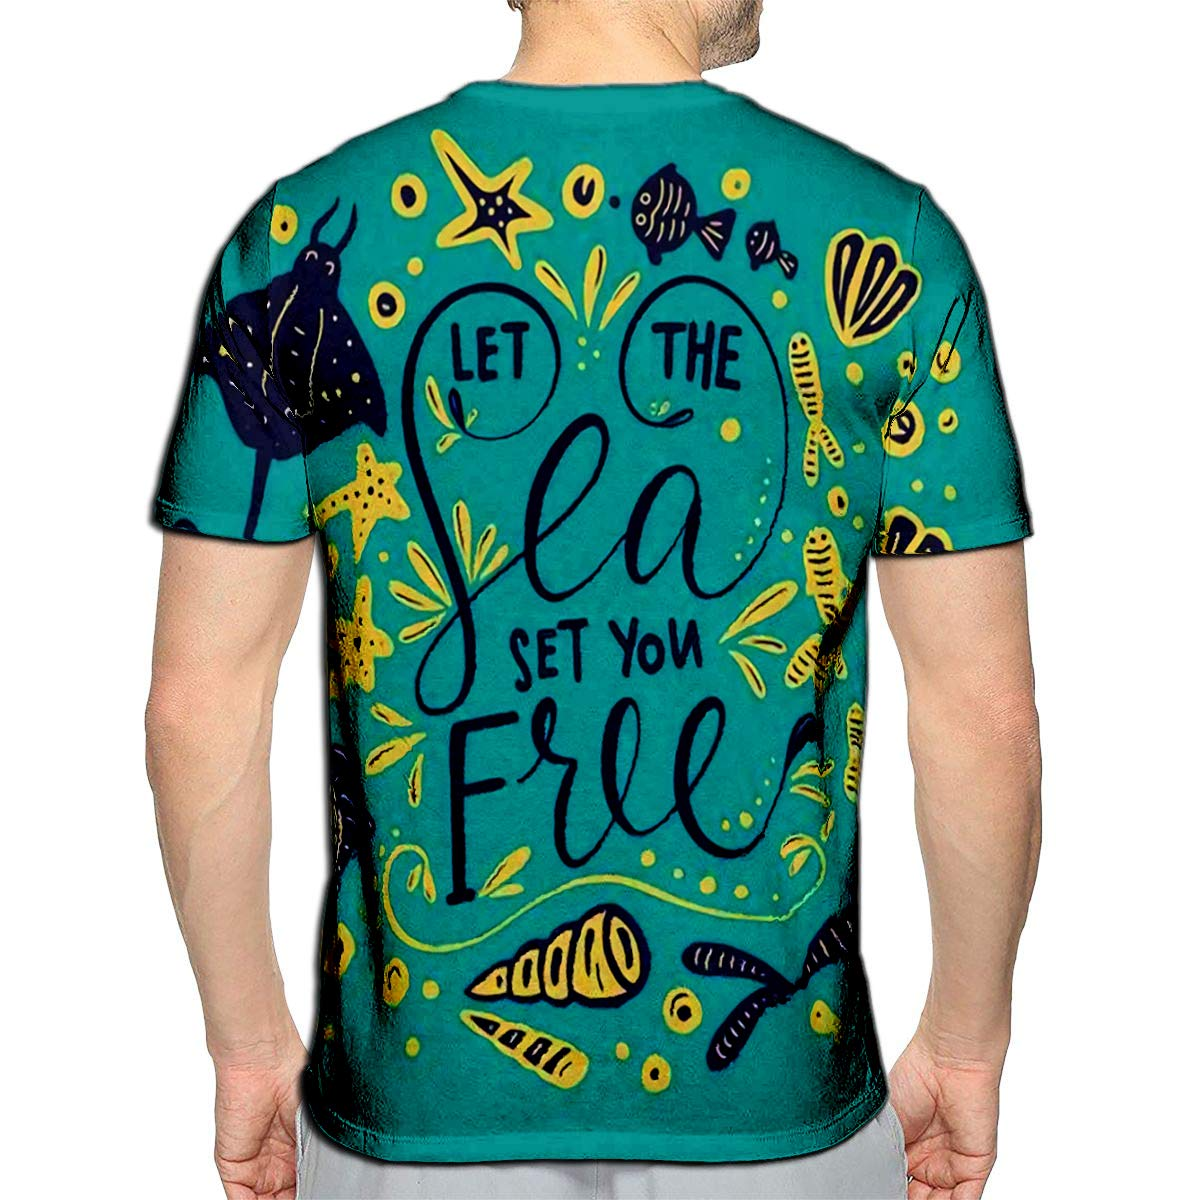 3D Printed T-Shirts Let The Sea Set You Free Calligraphy with Ocean Elements On